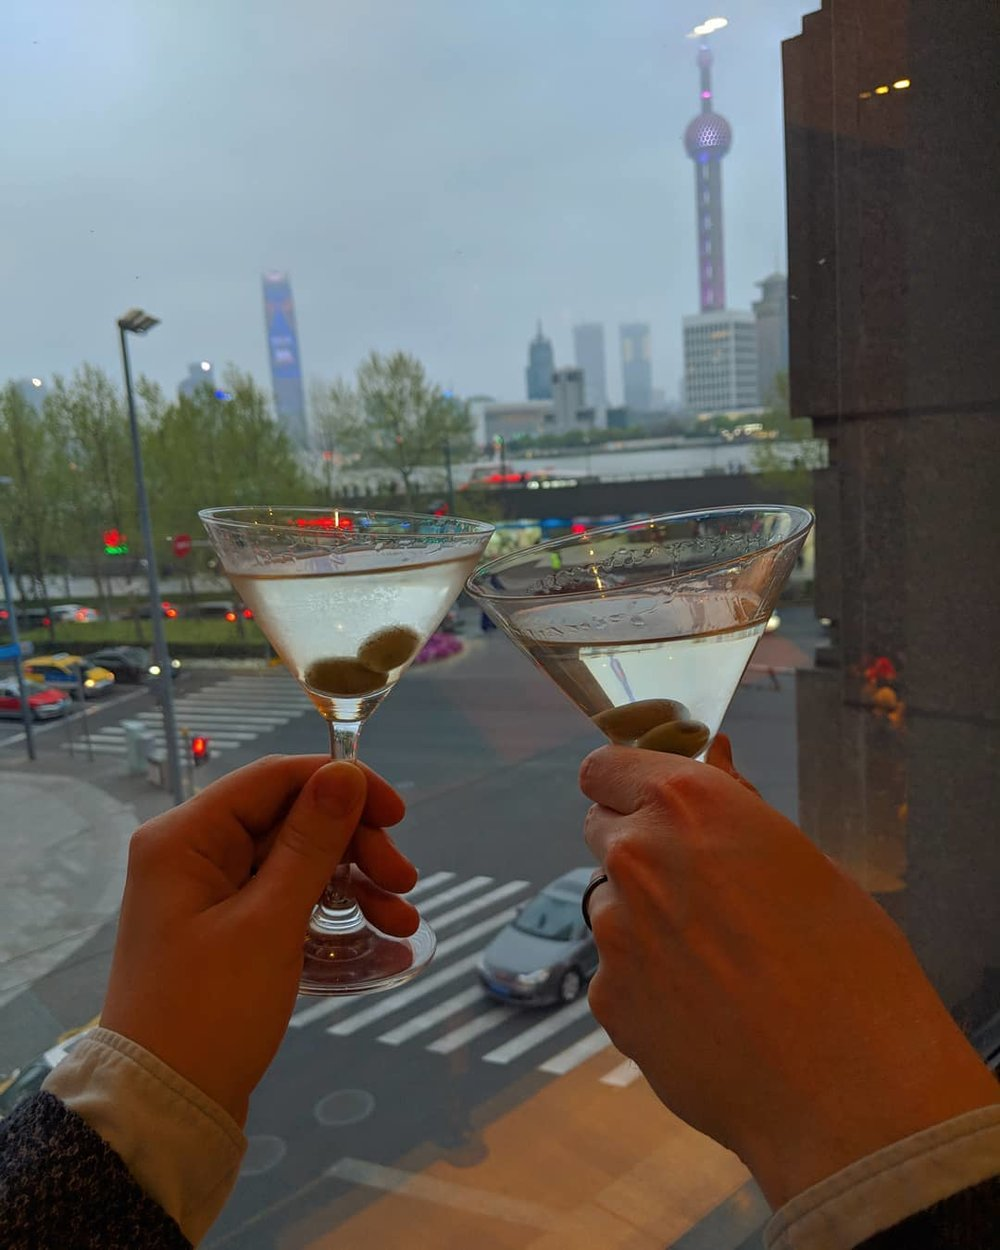 The view of Pudong from the hotel lobby was the backdrop for a week of martini instagram pictures